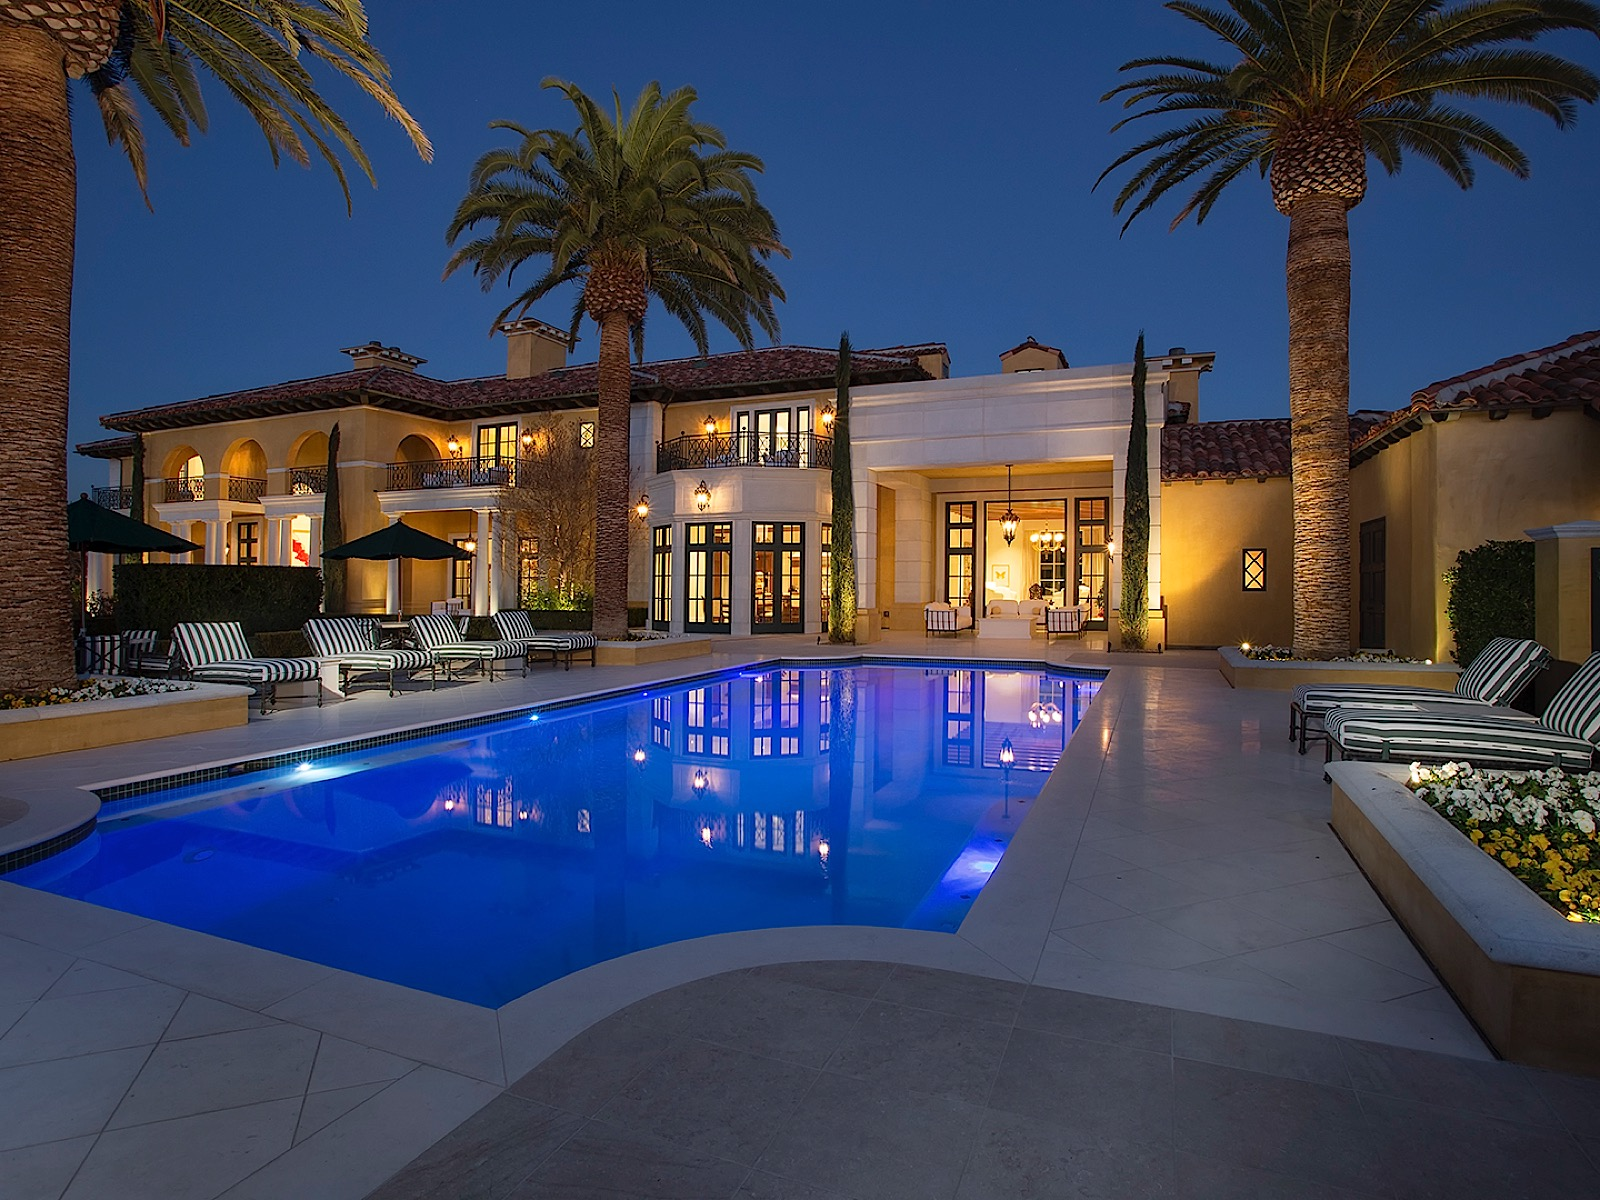 Single Family Home for Active at The Rameses Estate at the Enclave On the Most Prestigious Street in Las Vegas 1717 Enclave Court Las Vegas, Nevada 89134 United States